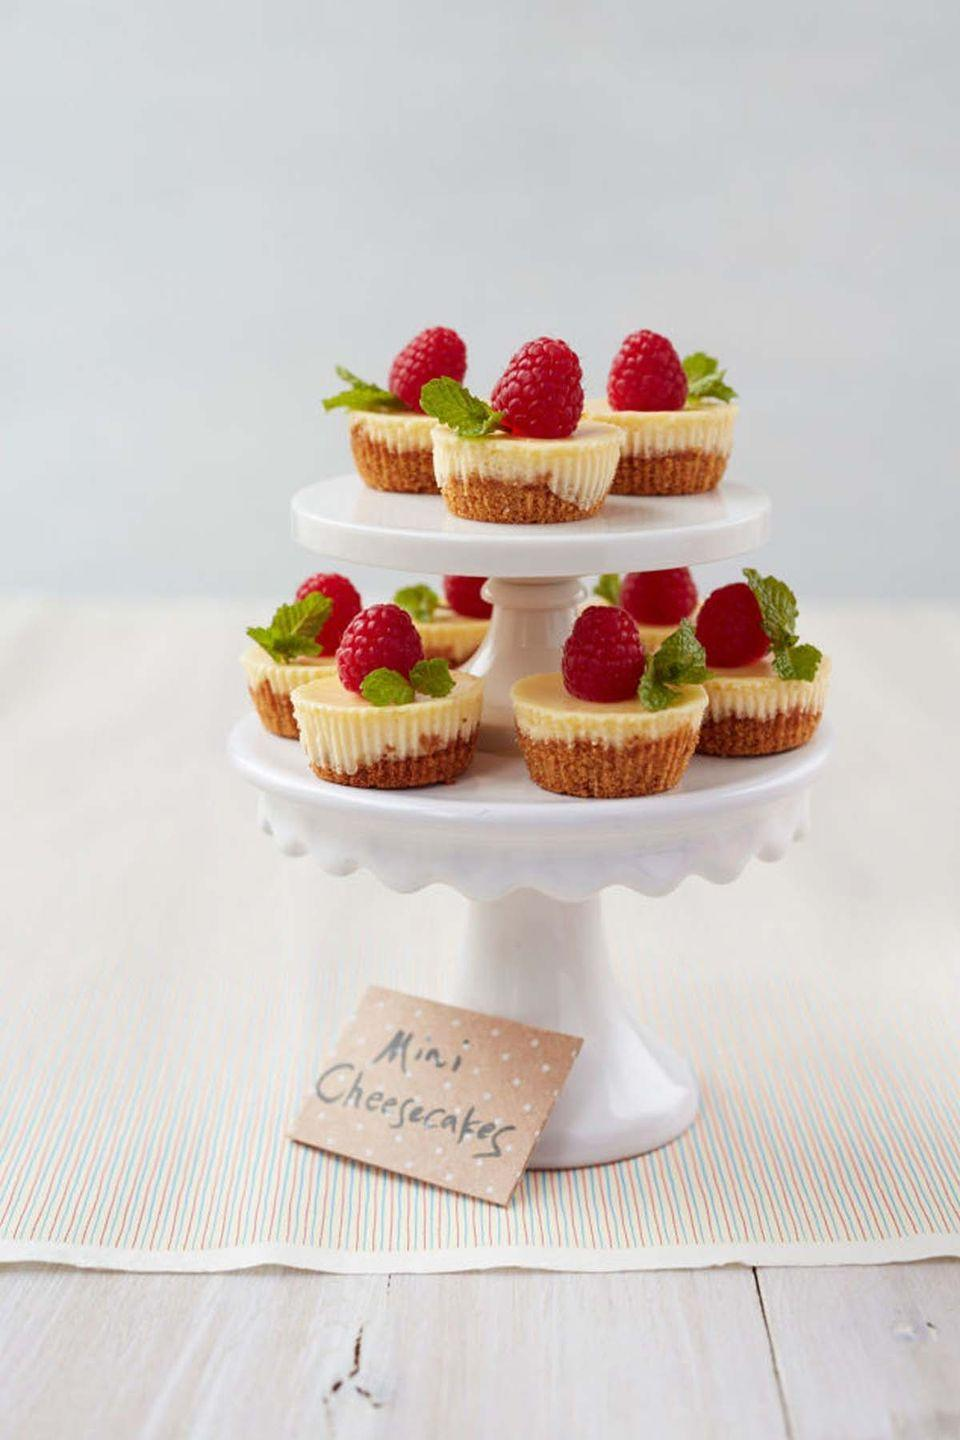 """<p>Personalize these miniature cheesecakes by topping them with mom's favorite fruits and candies. </p><p><a href=""""https://www.womansday.com/food-recipes/food-drinks/recipes/a39612/mix-match-mini-cheesecakes-recipe-ghk0514/"""" rel=""""nofollow noopener"""" target=""""_blank"""" data-ylk=""""slk:Get the recipe for Mix and Match Mini Cheesecakes."""" class=""""link rapid-noclick-resp""""><em>Get the recipe for Mix and Match Mini Cheesecakes.</em></a><br></p>"""